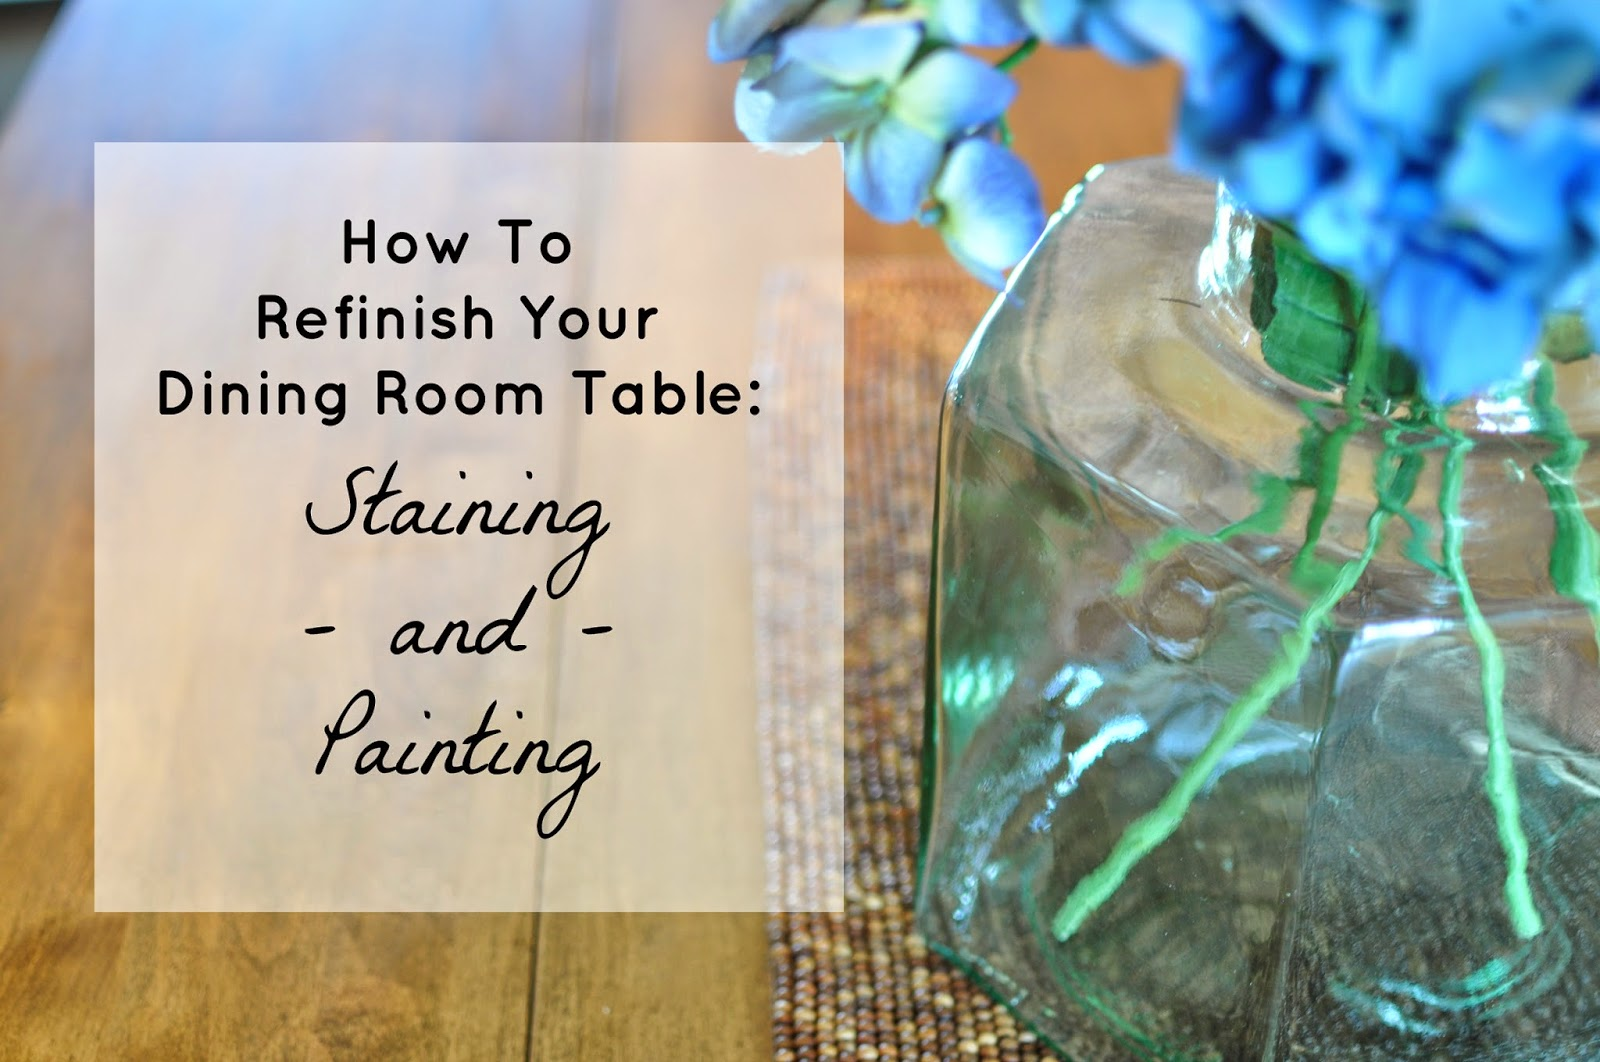 Refinish Dining Room Table: Staining and Painting